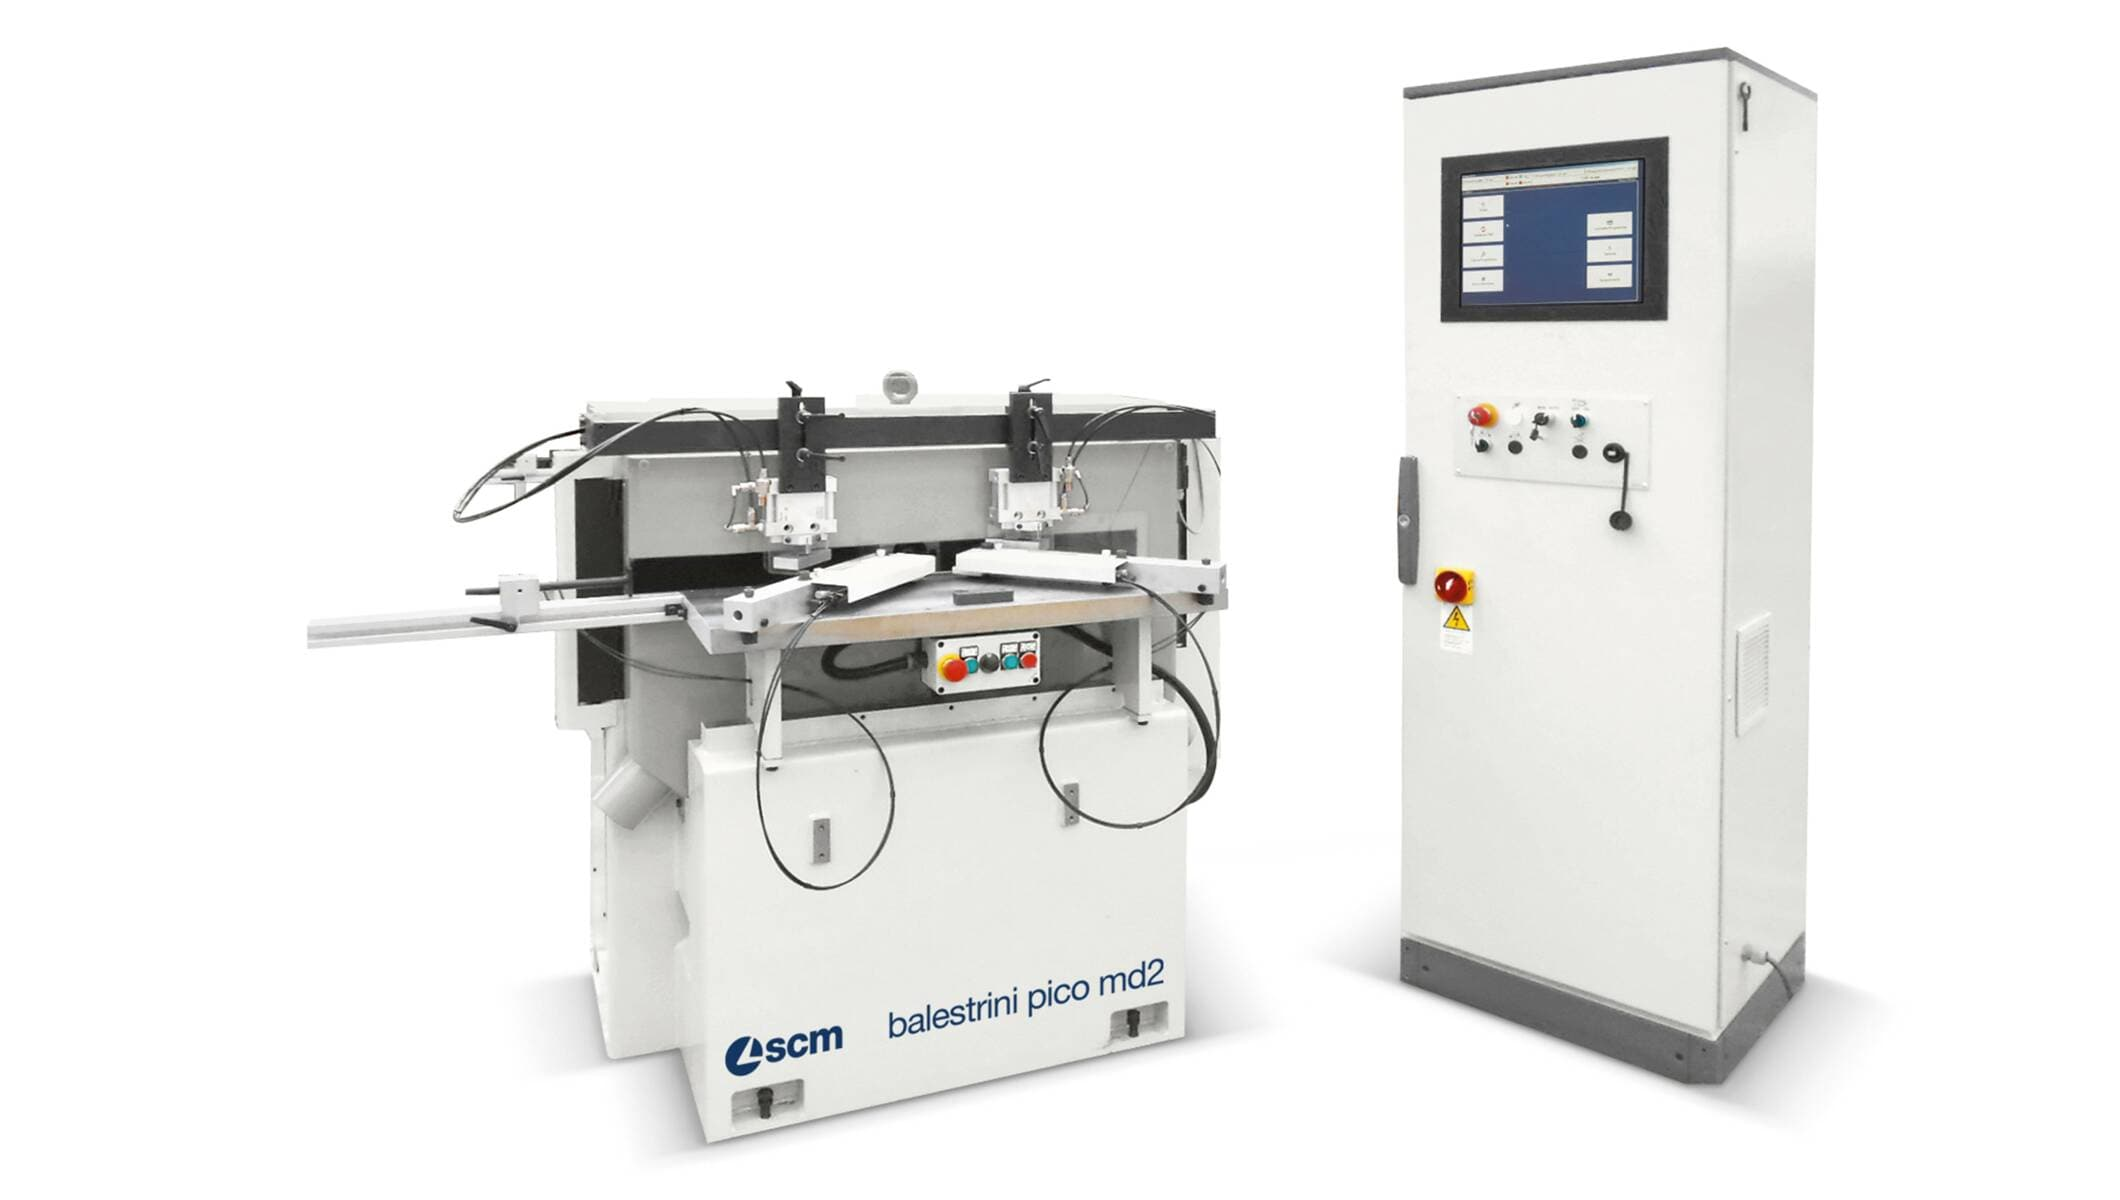 Tenoners, Mortisers, Double sided shapers - Tenoners, Mortisers, Double sided shapers - balestrini pico md2